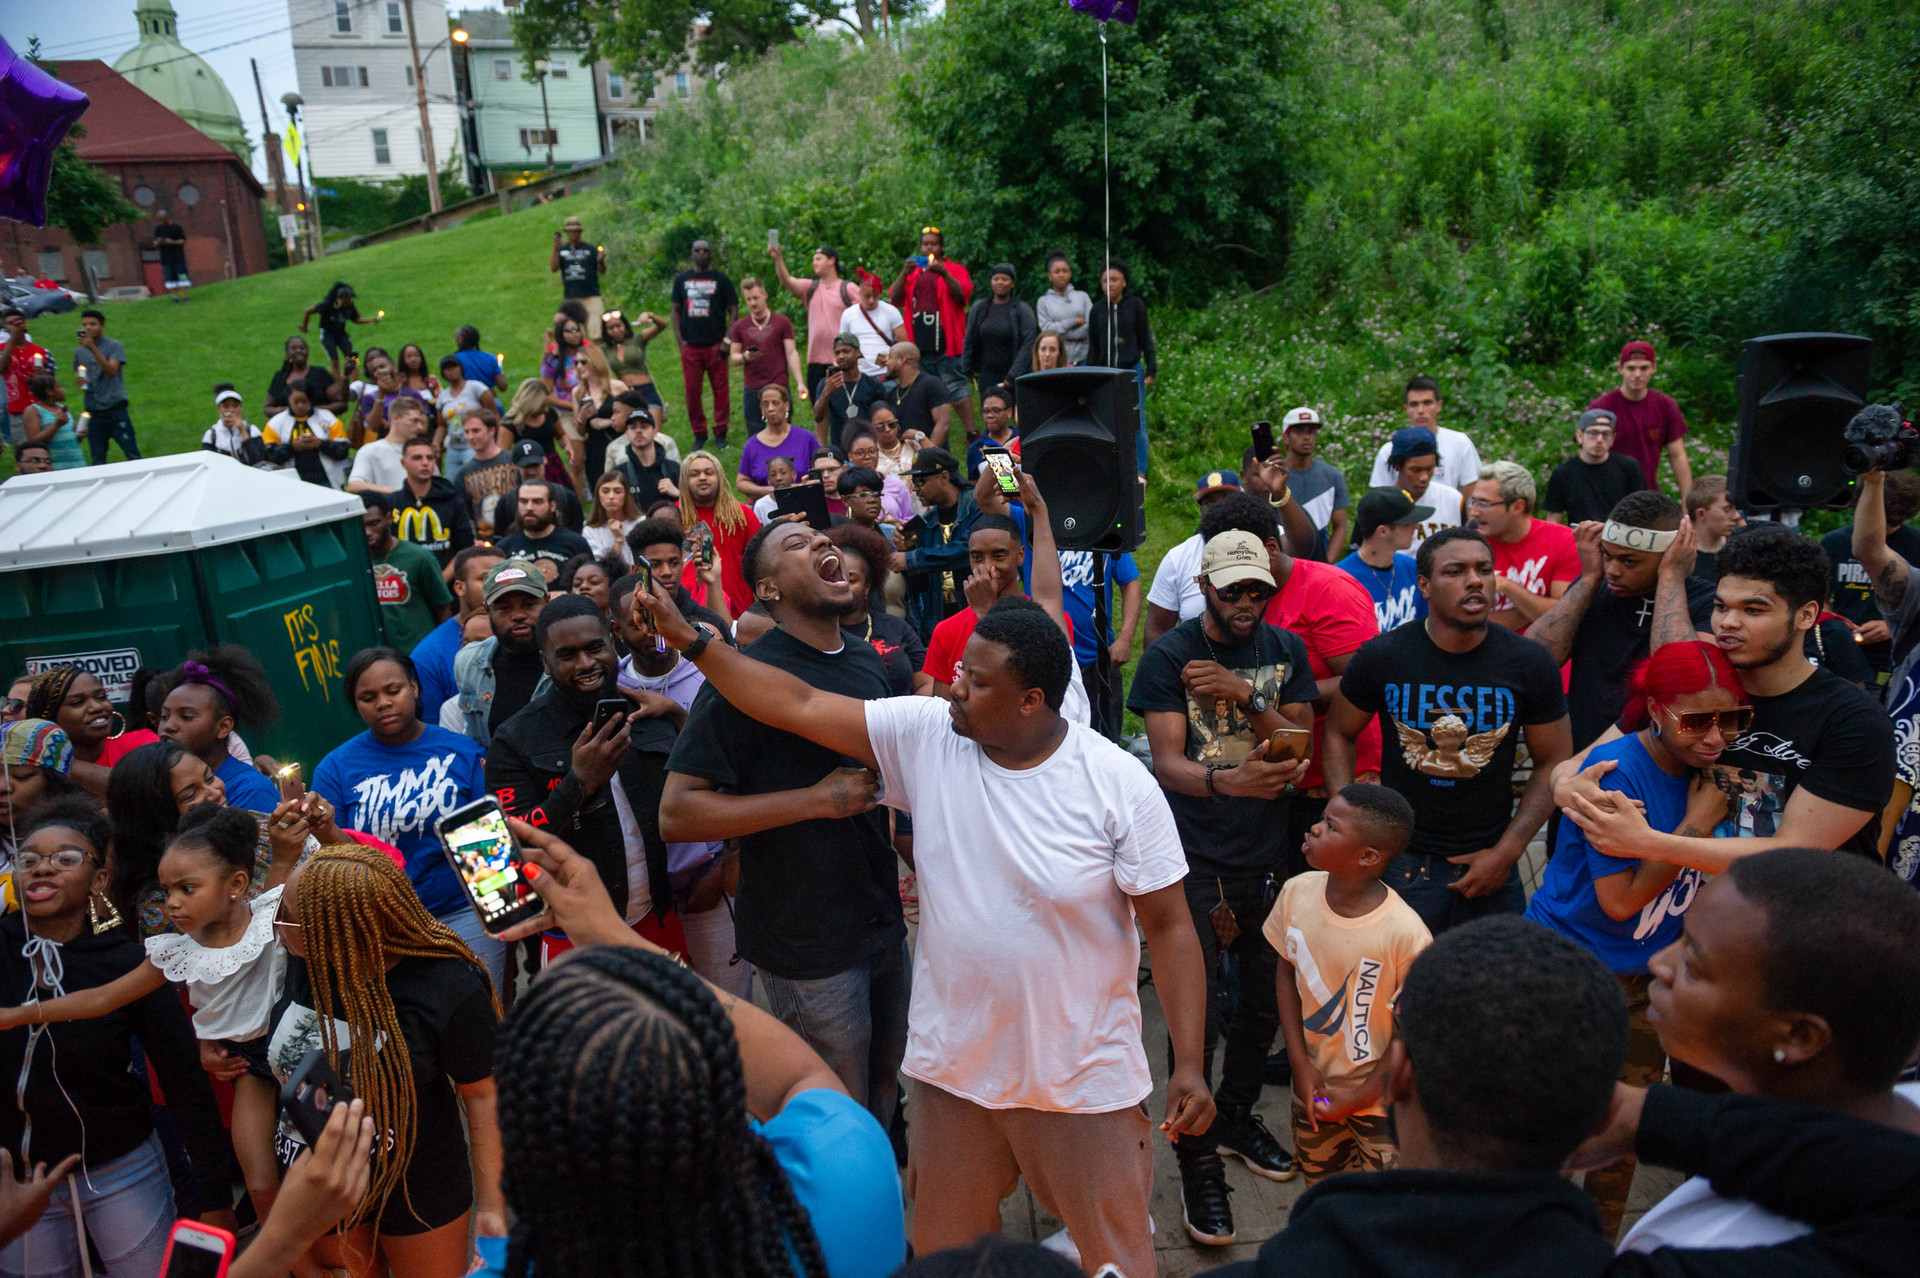 Pittsburgh rapper Jimmy Wopo's brother Juawane Dennison, from the Hill District, center, sings along to his brother Jimmy's music surrounded by friends and fans of the rapper during a vigil for the slain rapper at West Penn Park on Thursday June 21, 2018, in Polish Hill. Jimmy Wopo was fatally shot on Monday June 19 in the Hill District.